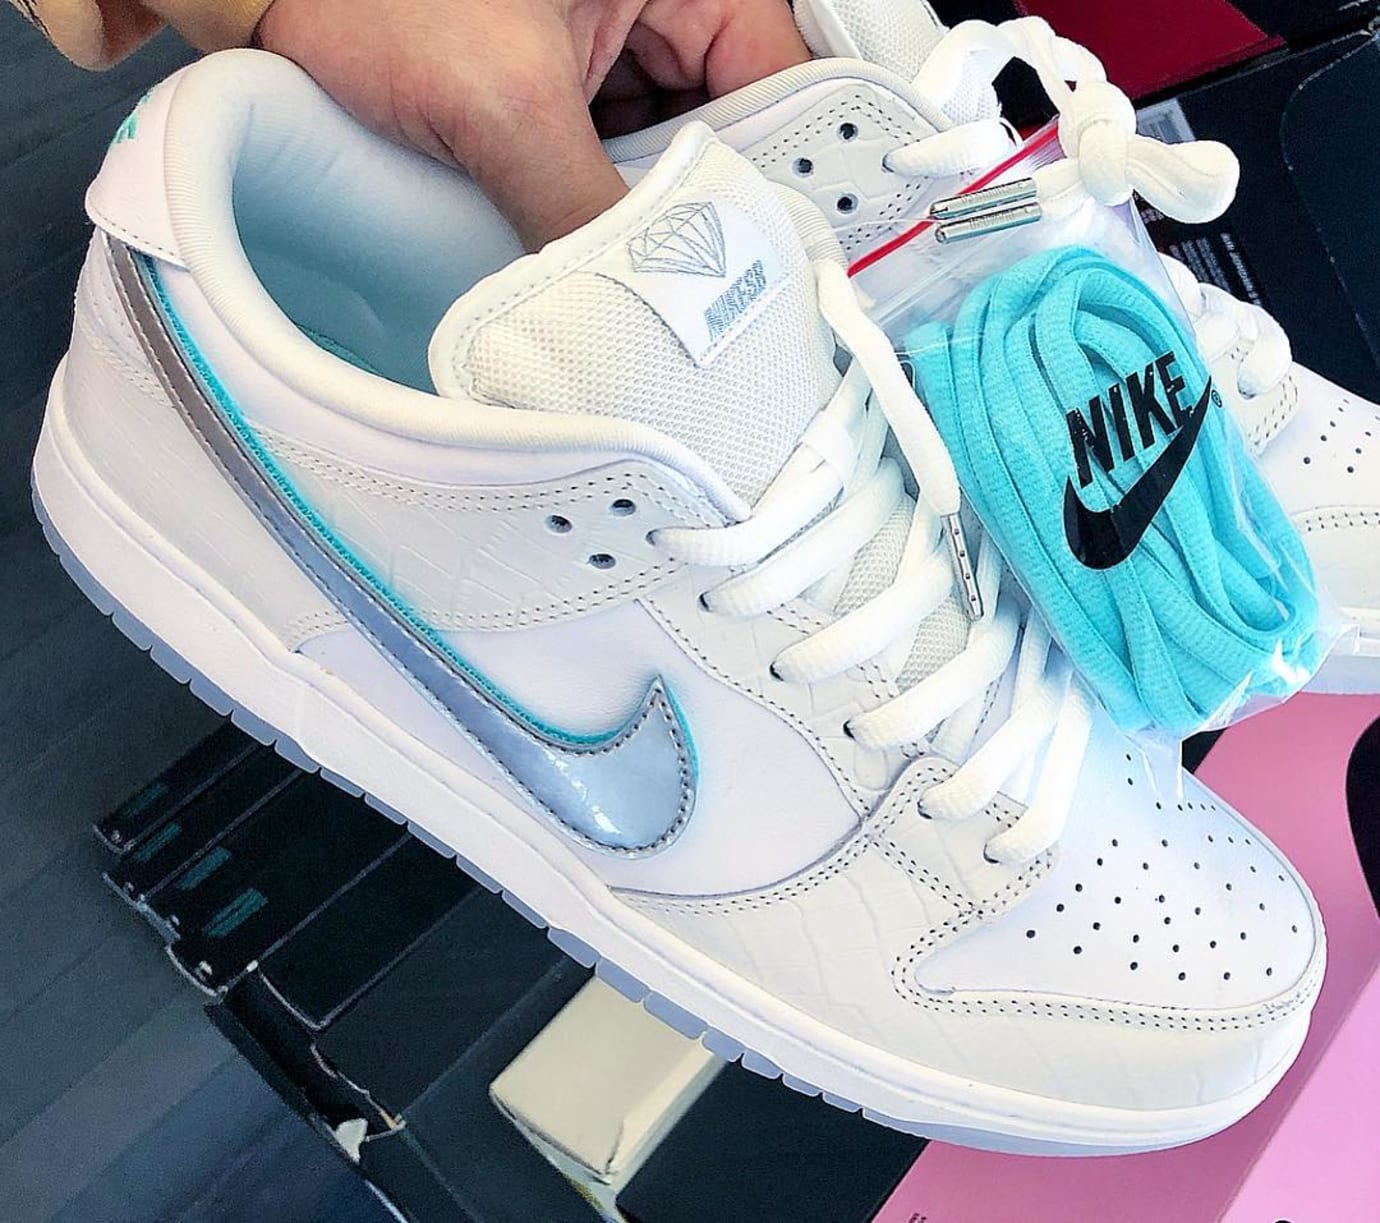 ad89be4251e Diamond Supply Co. x Nike SB Dunk Low  Tiffany  2018 Release Date ...